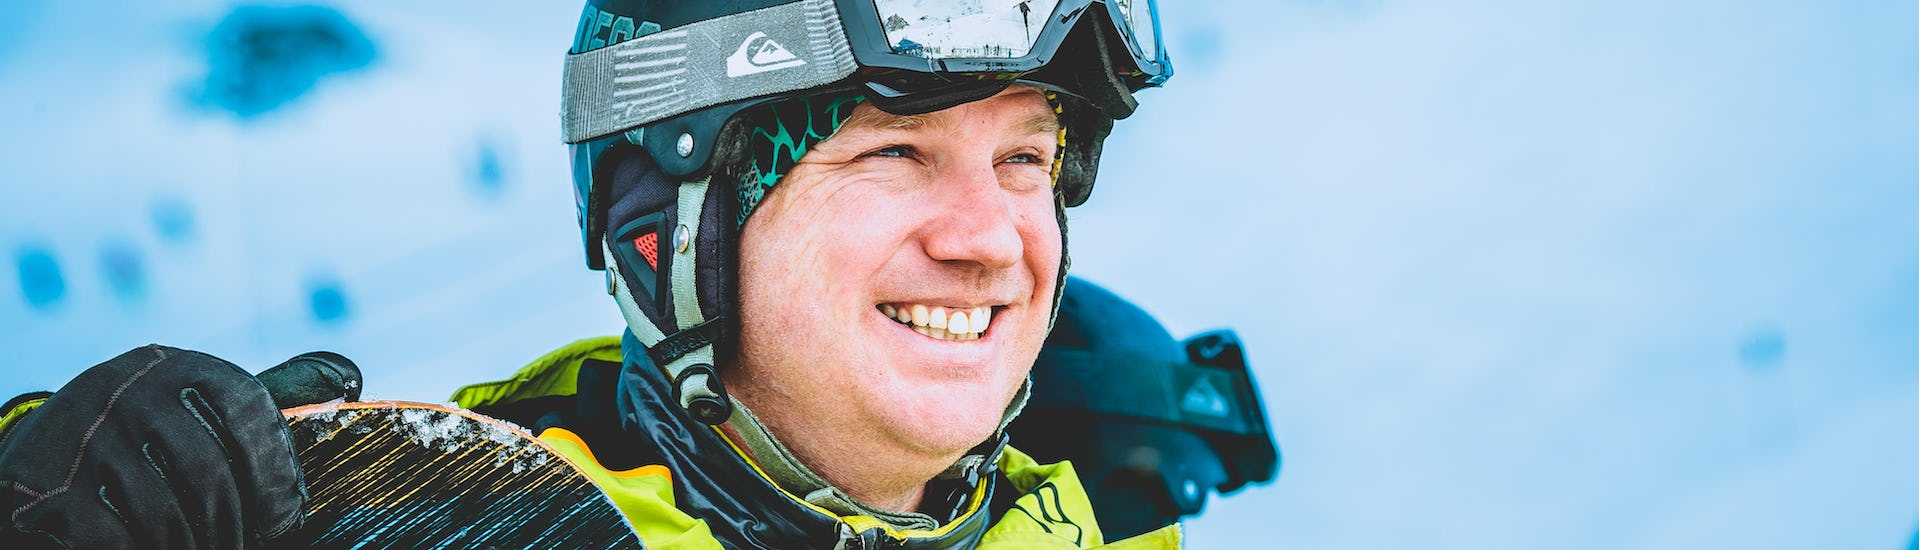 Snowboarding Instructor Private - All Levels & Ages